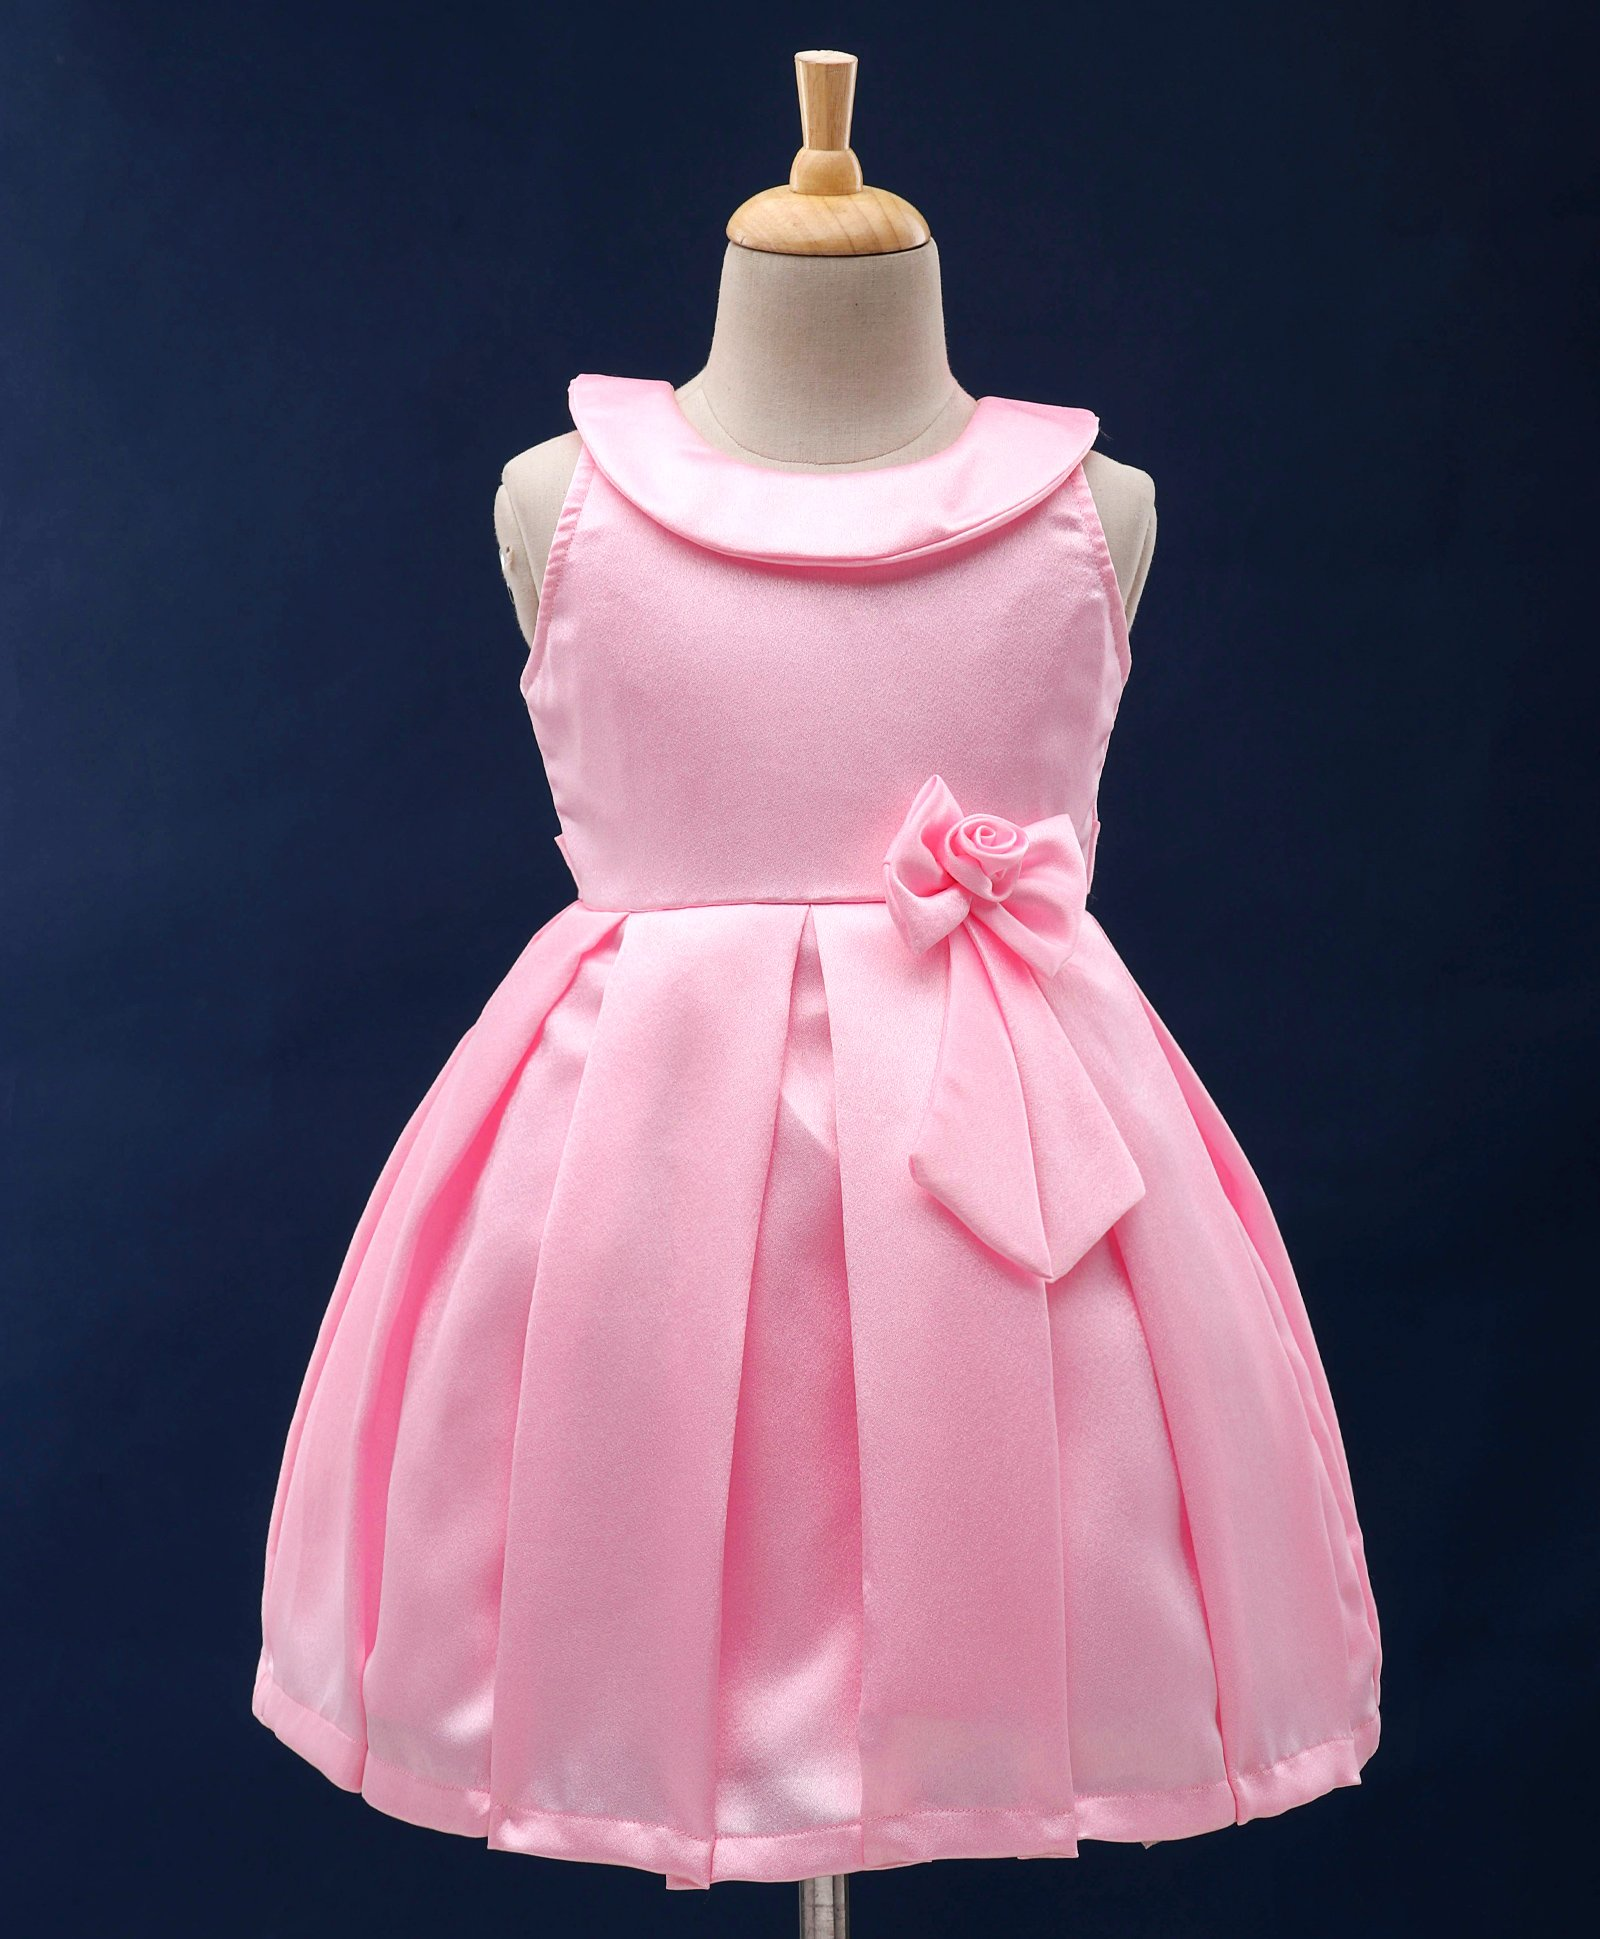 4c5043320597c Buy Babyhug Sleeveless Party Wear Frock Rose Motif Pink for Girls (2-3  Years) Online in India, Shop at FirstCry.com - 2426181